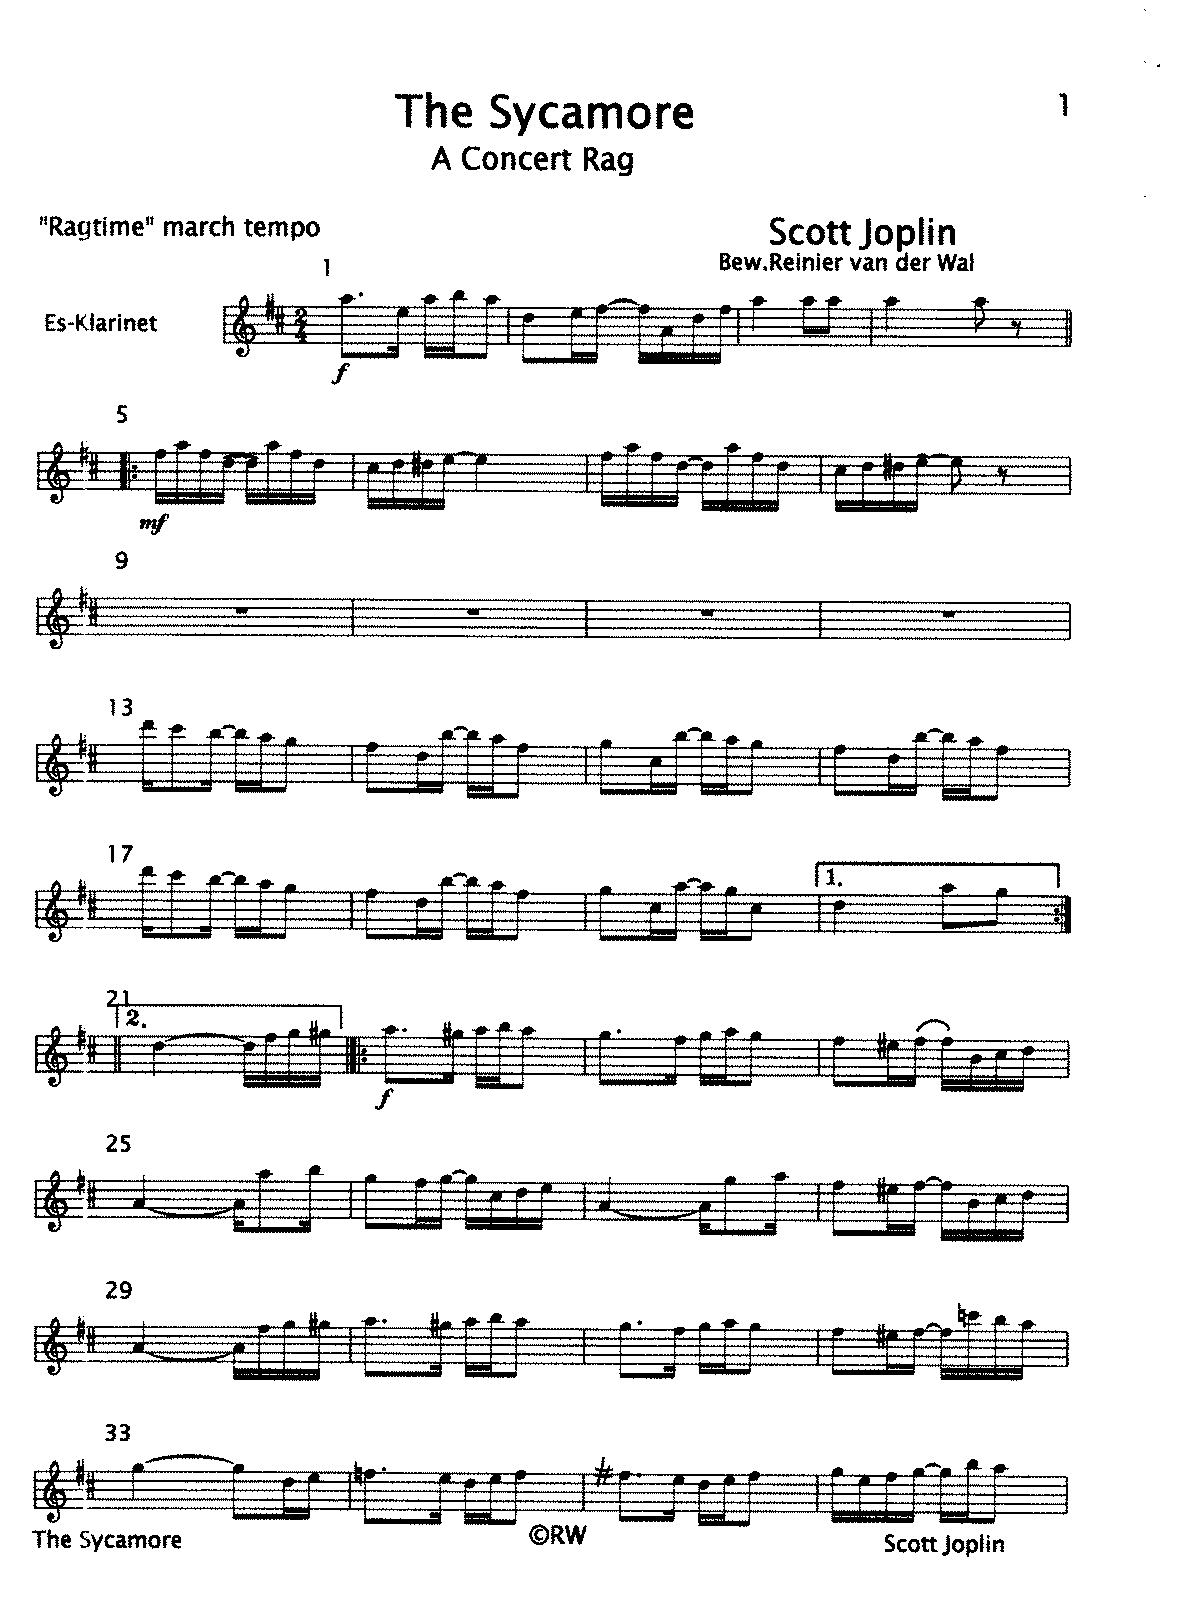 PMLP13264-Scott Joplin - The Sycamore.pdf